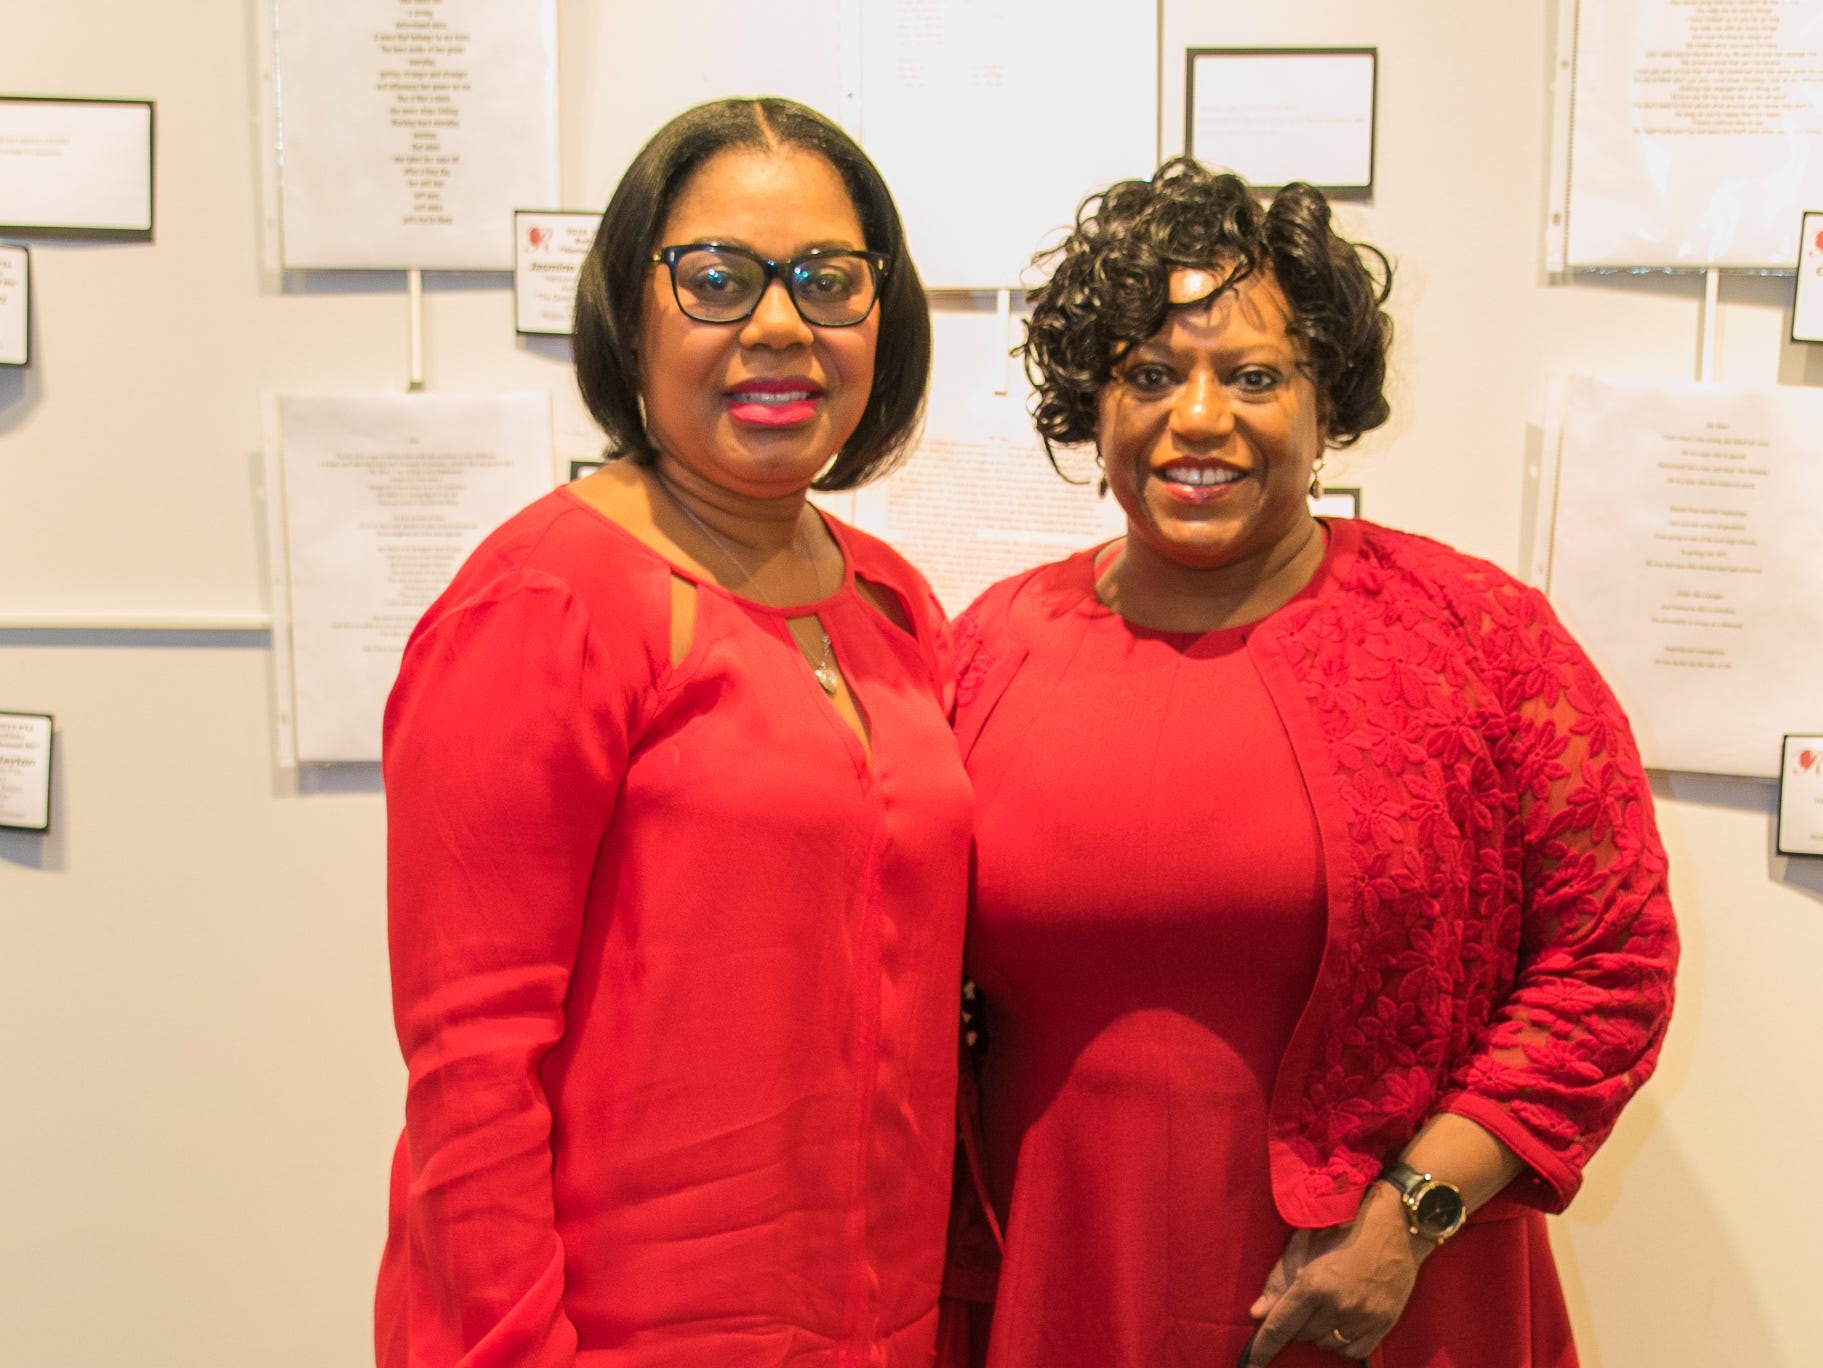 Dr. Marian Van Dyke-Acquah, Dr. Menen Mathias. The National Coalition of Black Women of Bergen and Passaic Counties held its annual Heart Healthy Go Red Event at The Hackensack Performing Arts Theater. 02/01/2019